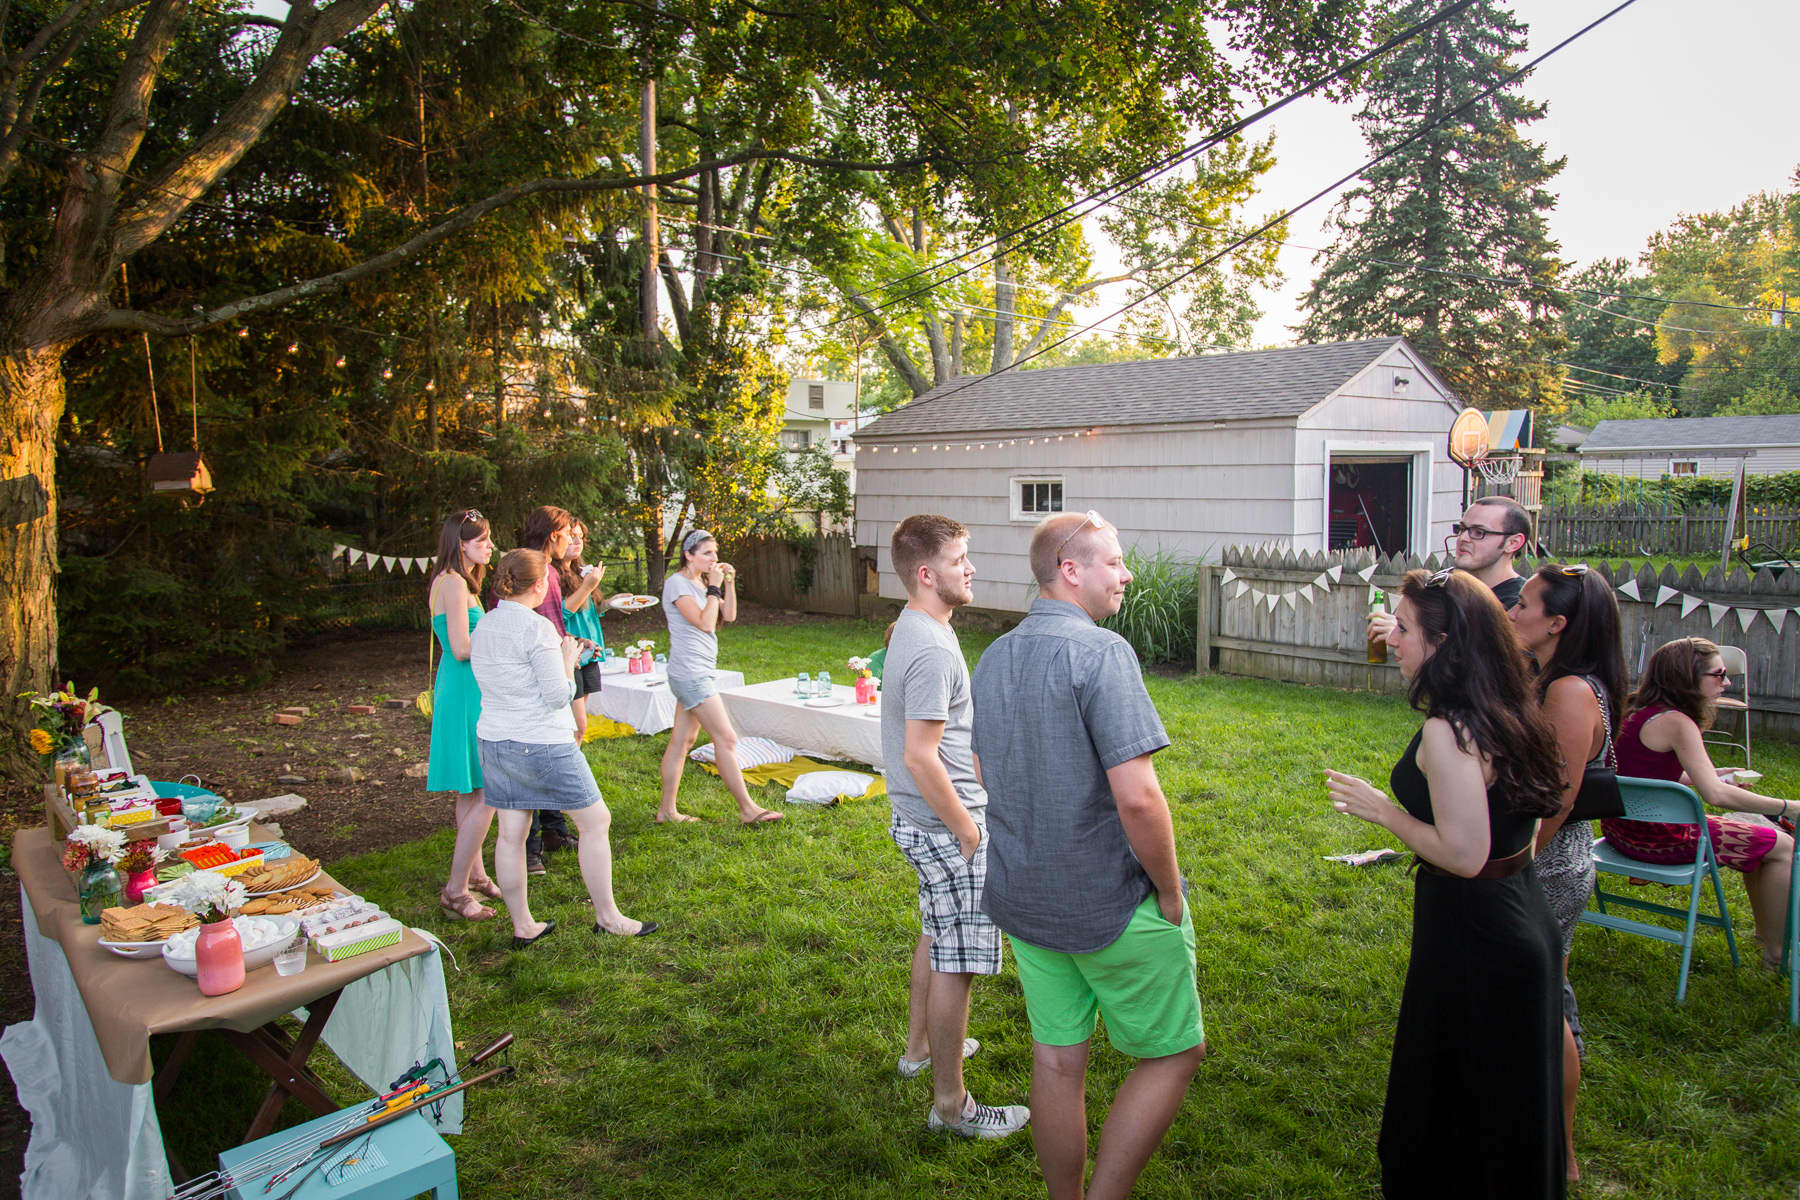 A Backyard S'mores Party: gallery image 31